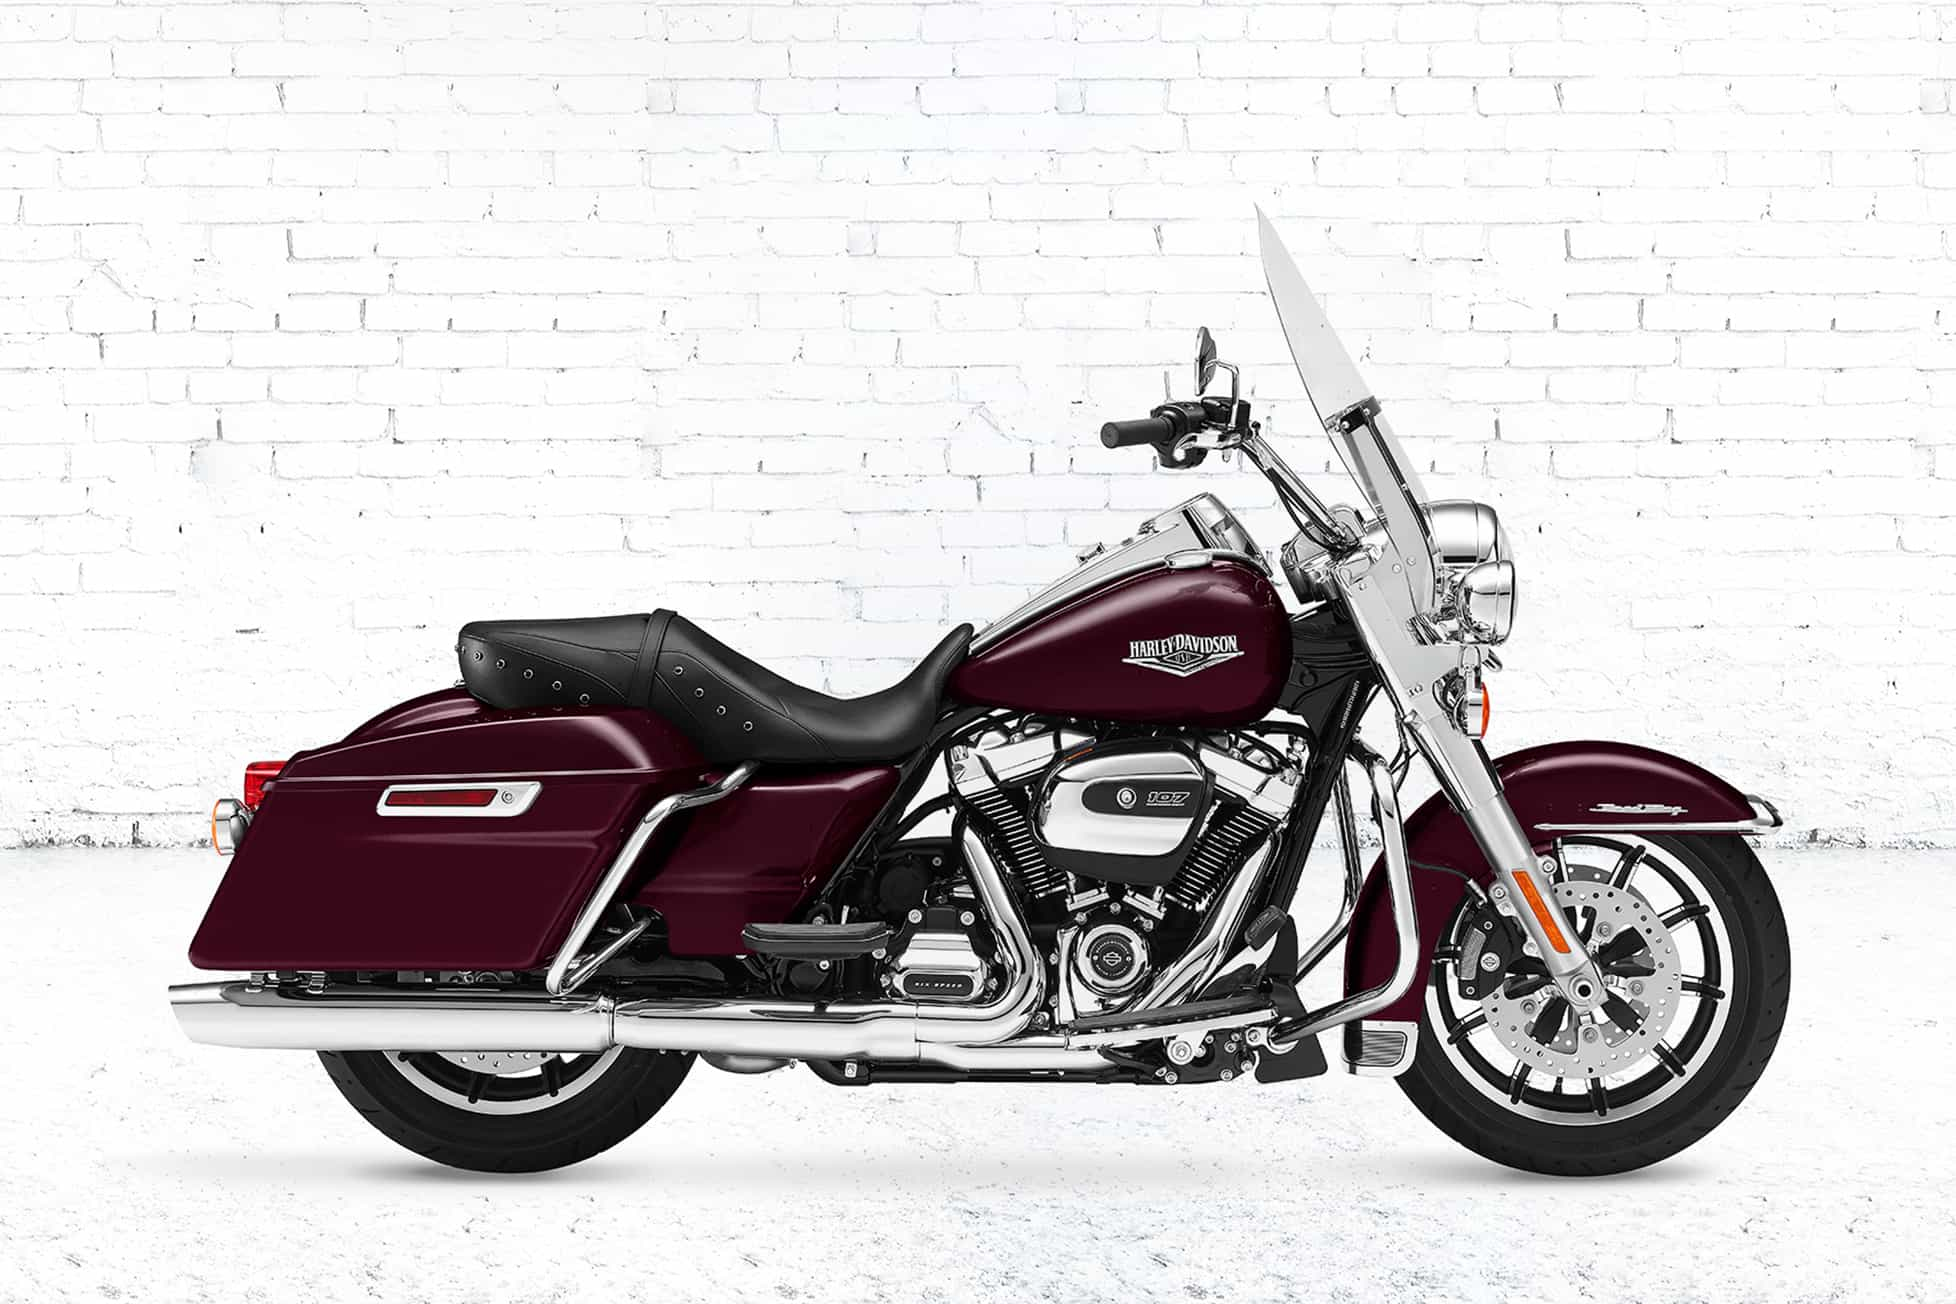 2018 Harley-Davidson® Touring Road King®